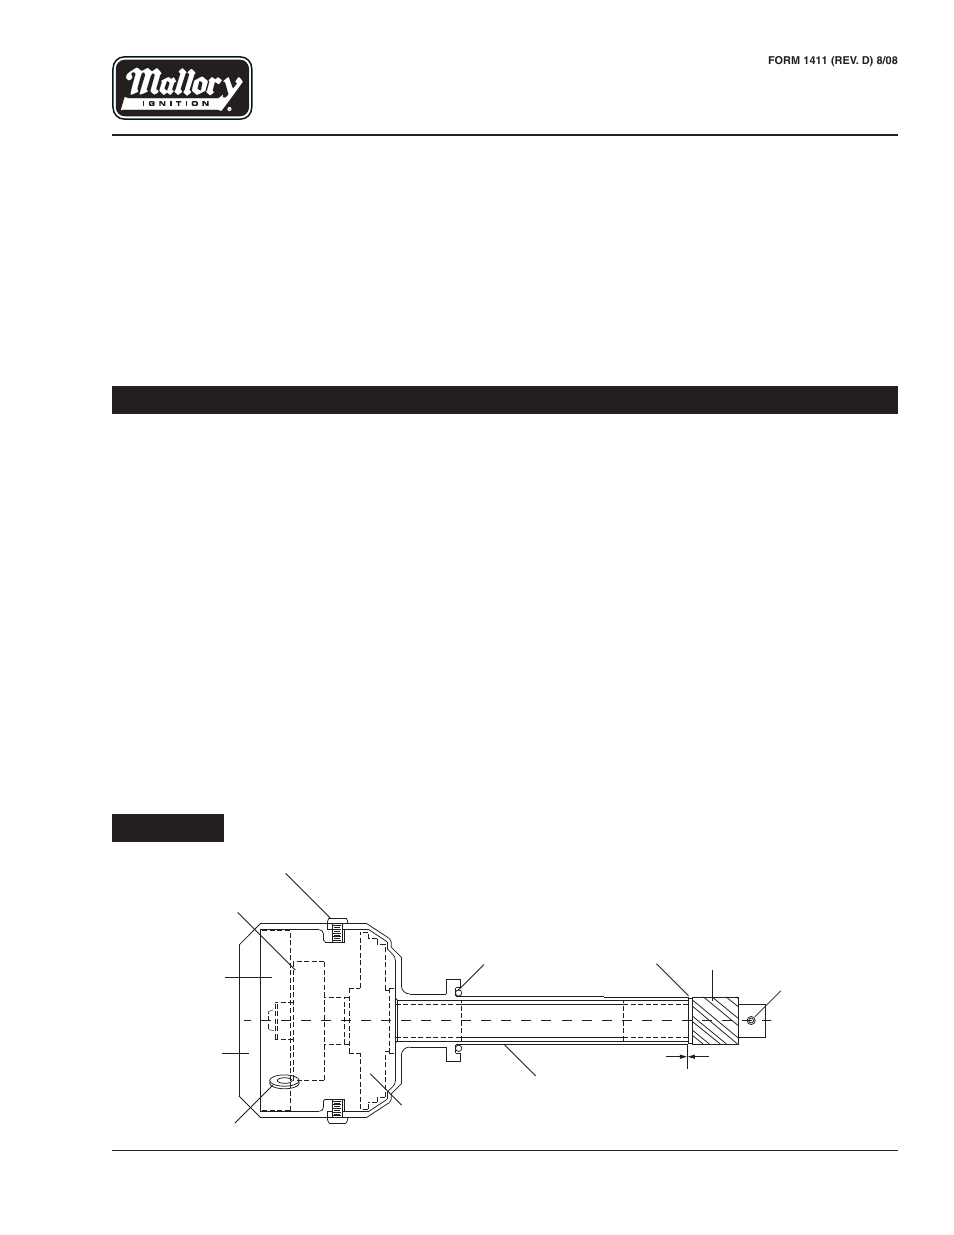 Mallory Ignition Wiring Diagram Digital Motorcycle Schematic Diagrams Unilite Distributor For Product